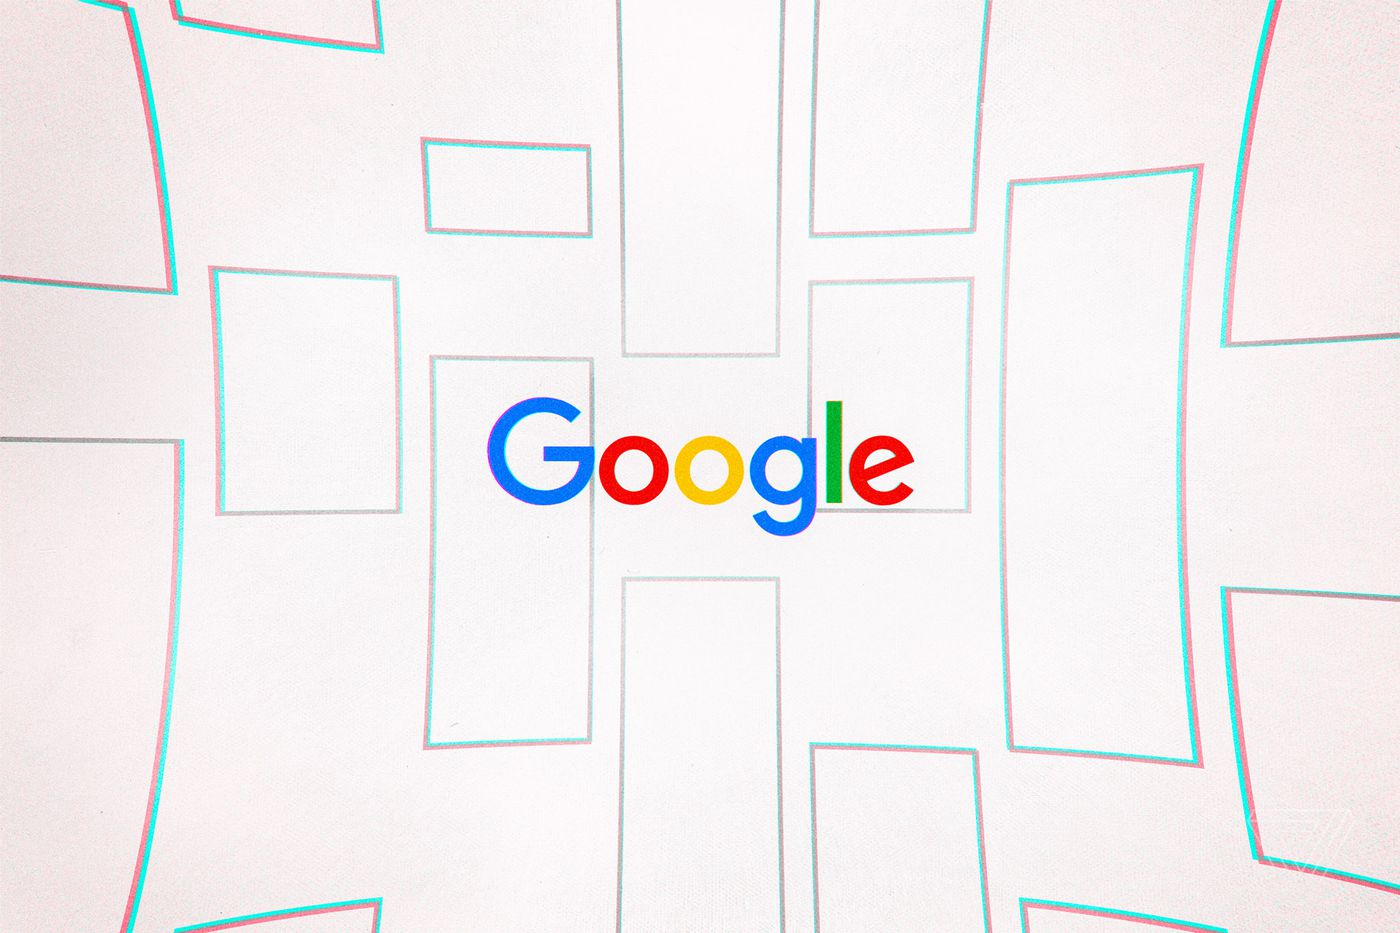 Google personalizes search results even when you're logged out, new study finds